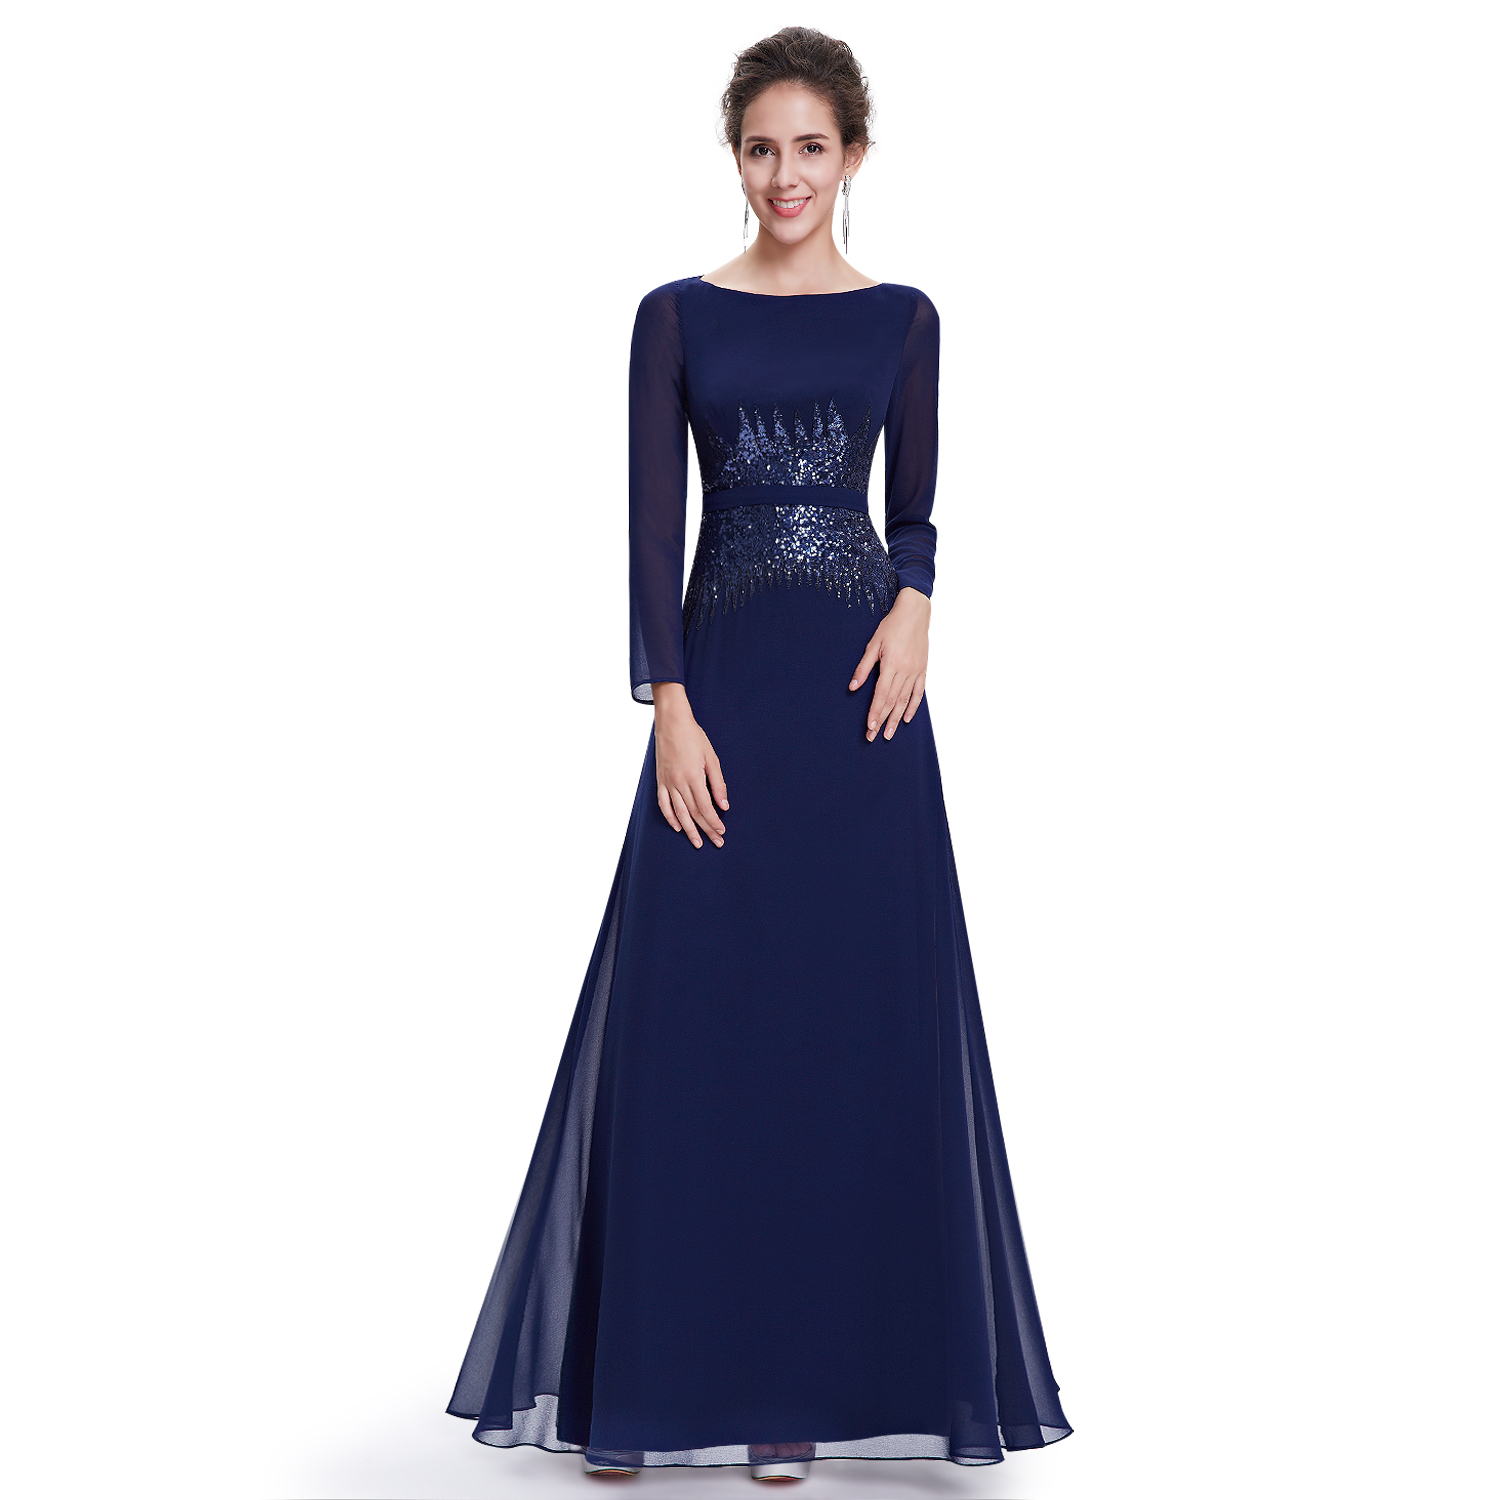 womens evening dresses with sleeves photo - 1